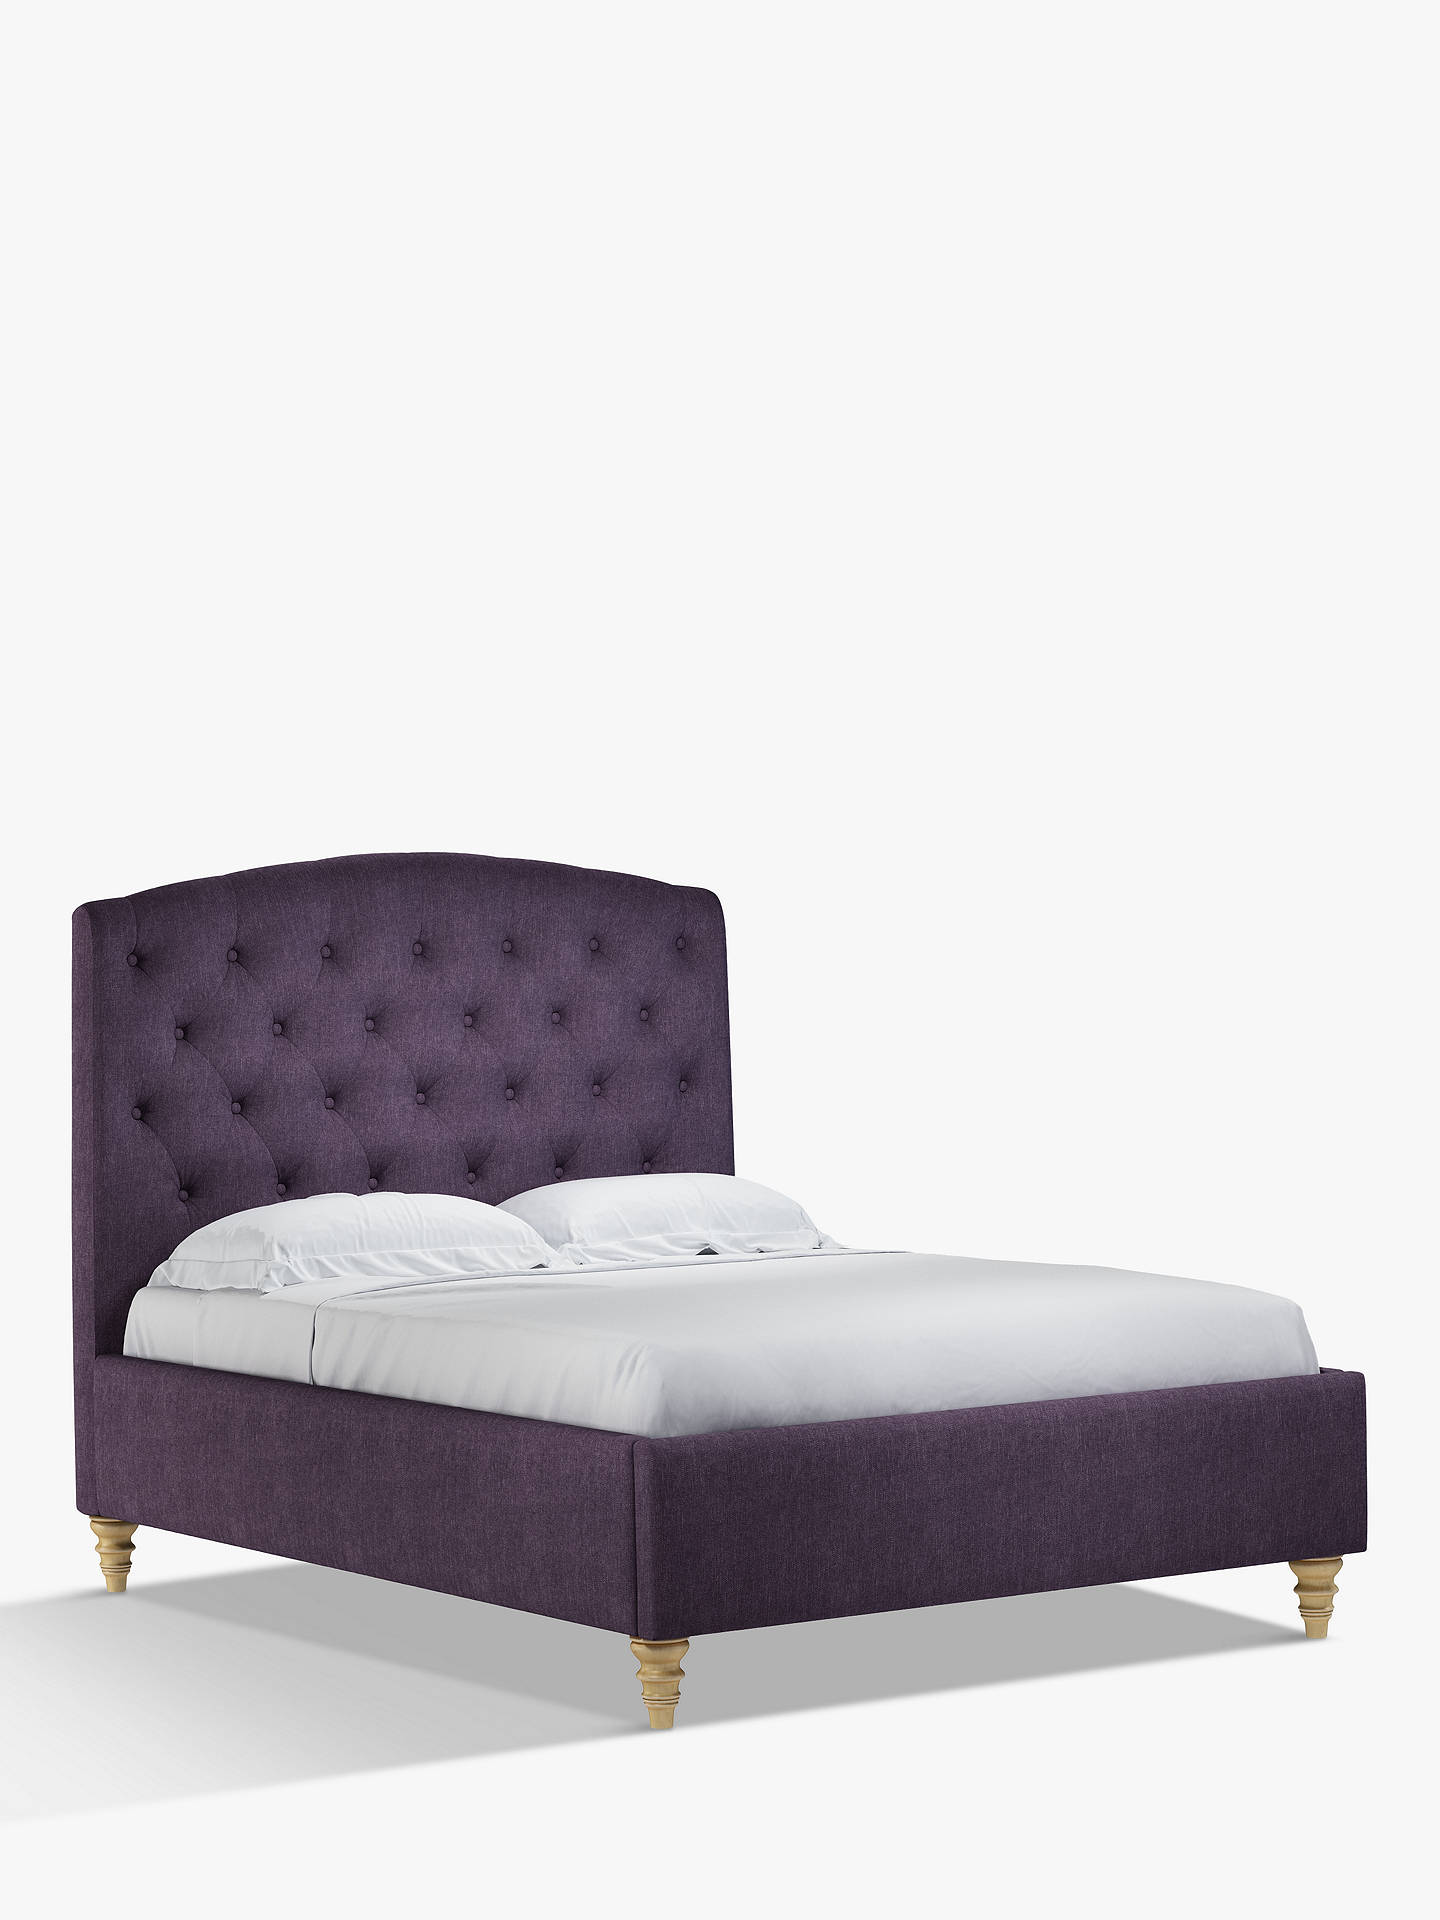 Buy John Lewis & Partners Rouen Upholstered Bed Frame, Double, Erin Damson Online at johnlewis.com